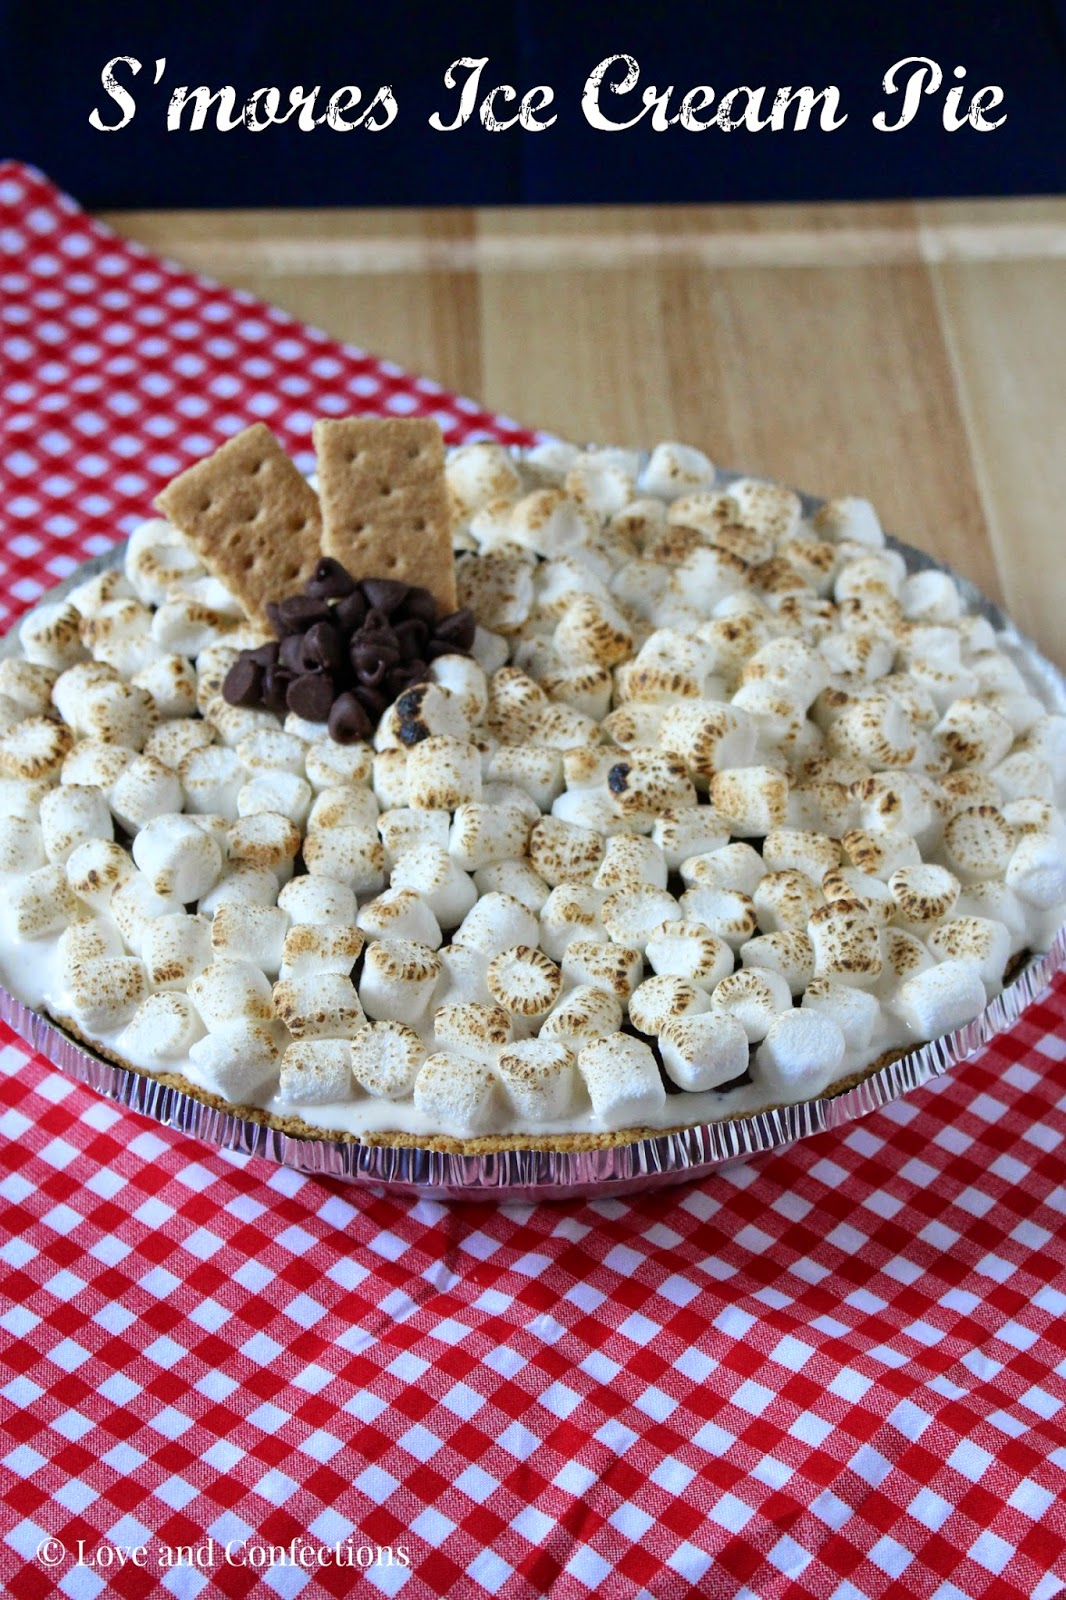 Love and Confections: S'mores Ice Cream Pie